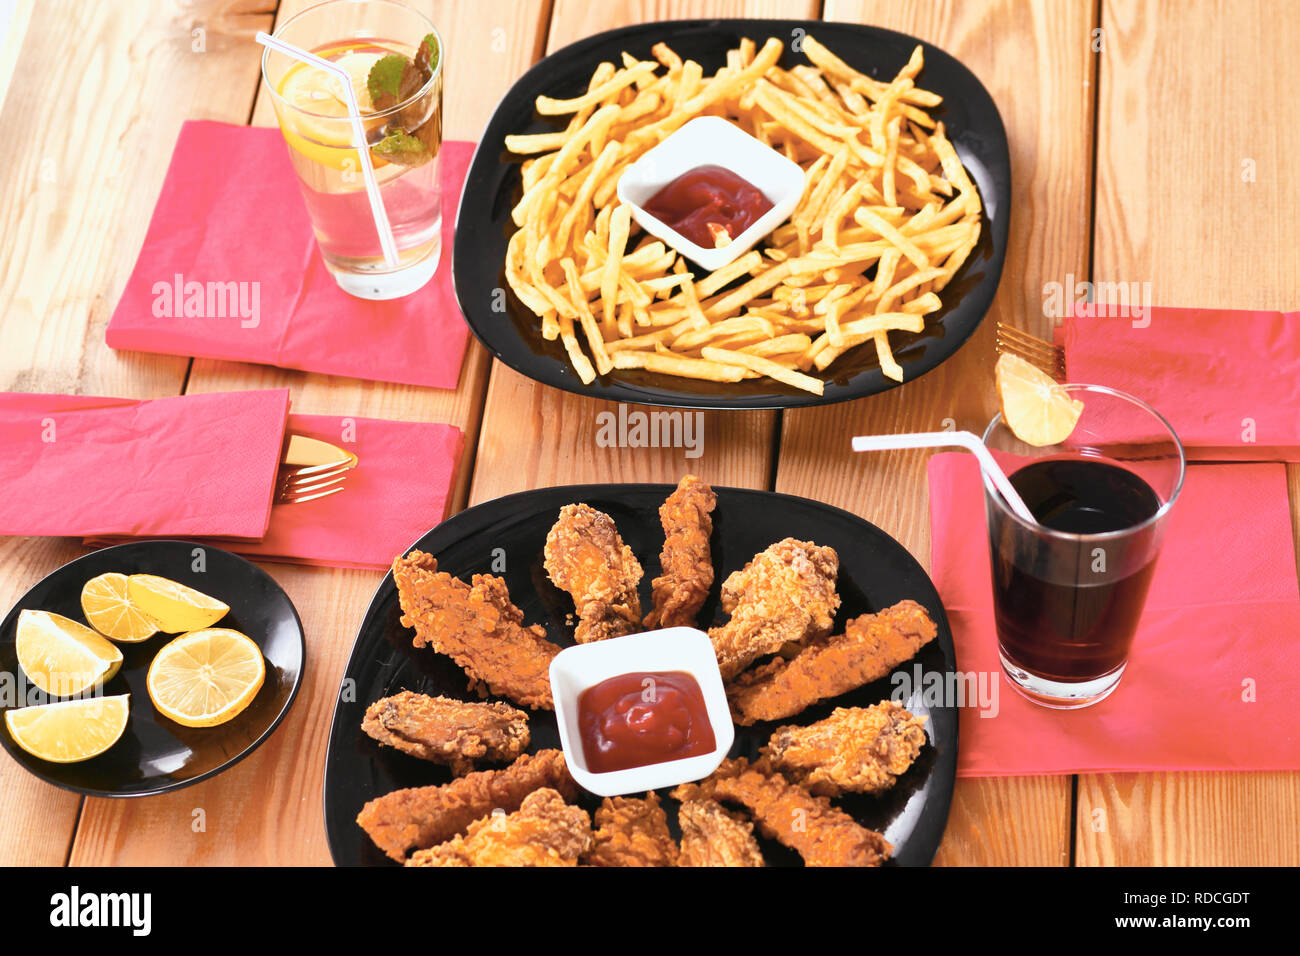 potatoes and wings with sauce in the plate on the table - Stock Image